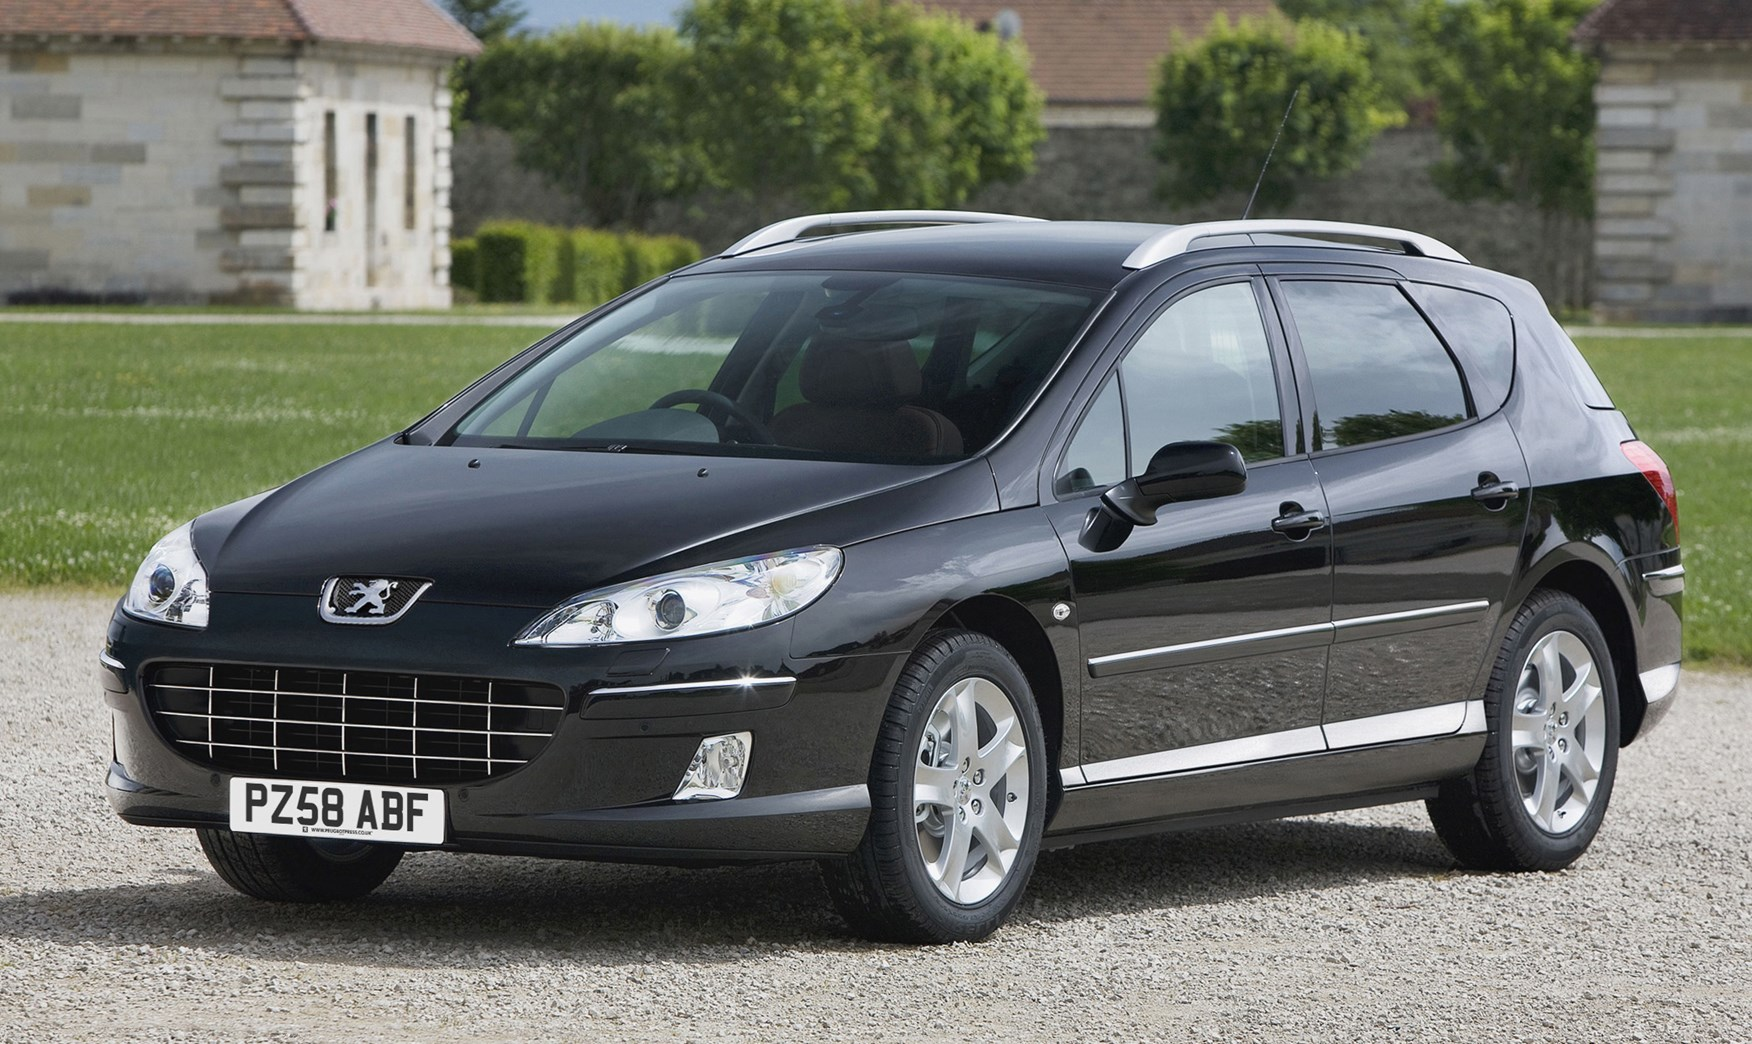 Used Peugeot 407 SW Estate (2004 - 2011) Review